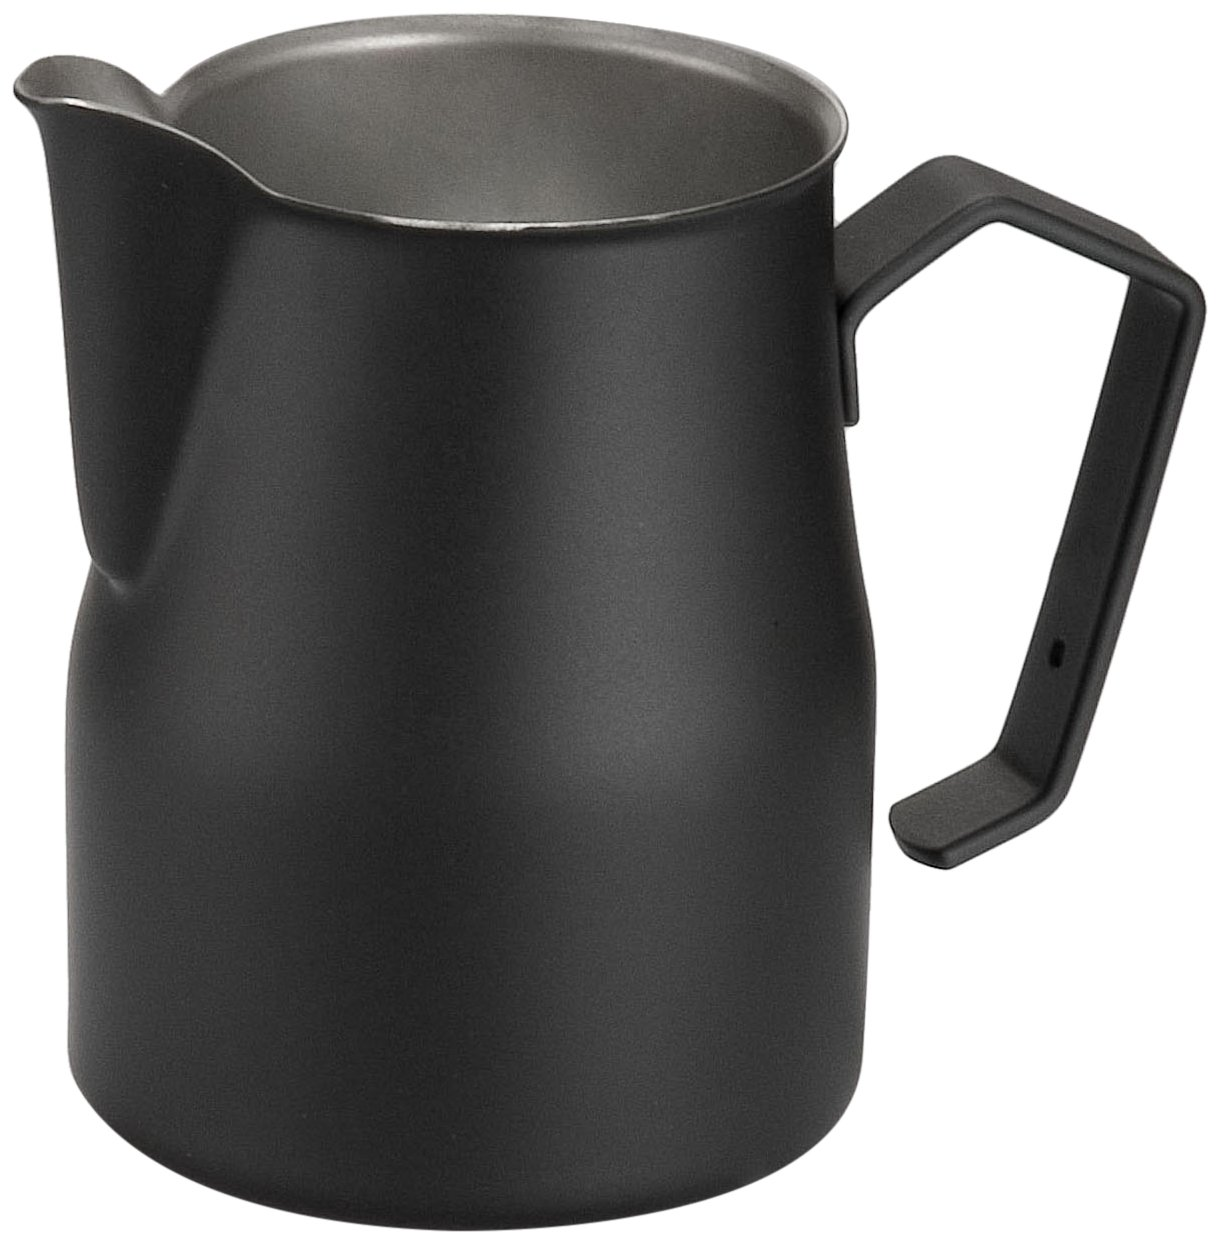 Motta Stainless Steel Professional Milk Pitcher/Jugs, 11.8 Fluid Ounce, Black by Metallurgica Motta